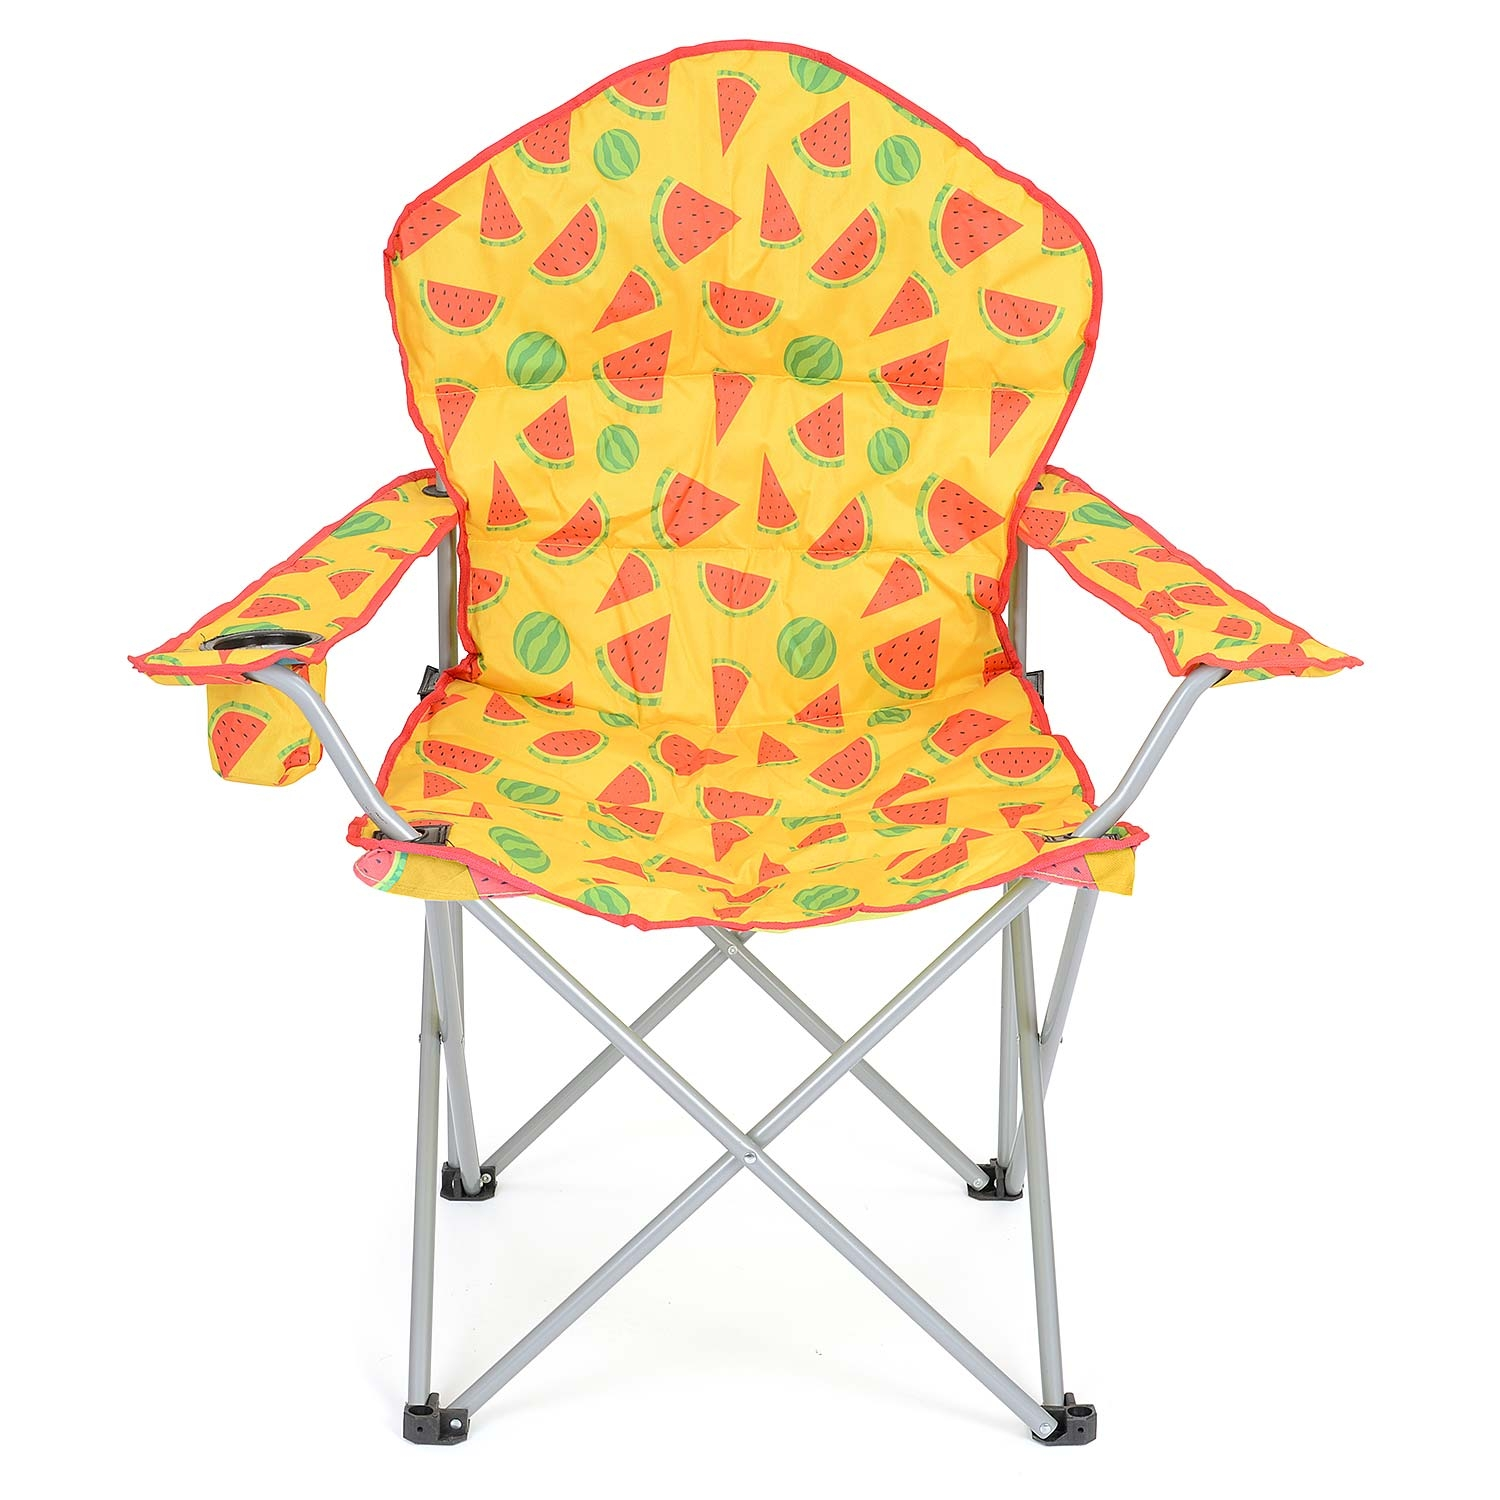 Trail Deluxe Watermelon Camping Chair - Yellow